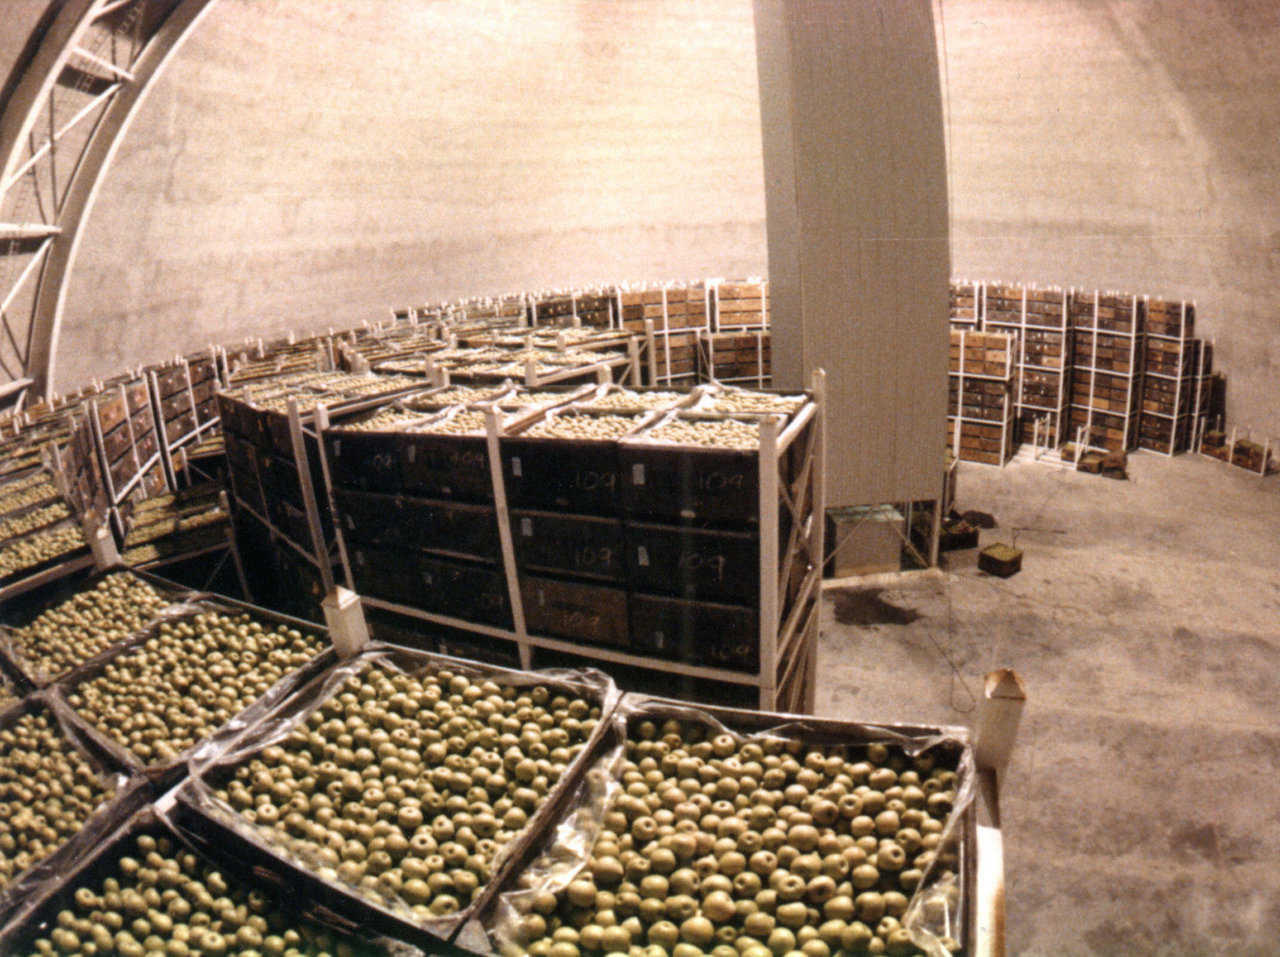 Product Stacking — Product stacking inside a Dome allows for a circular aisle along the inside perimeter of the Dome, as well as a center aisle. This allows for better utilization of space and travel time to load and retrieve product is minimal for both automated and manual retrieval.